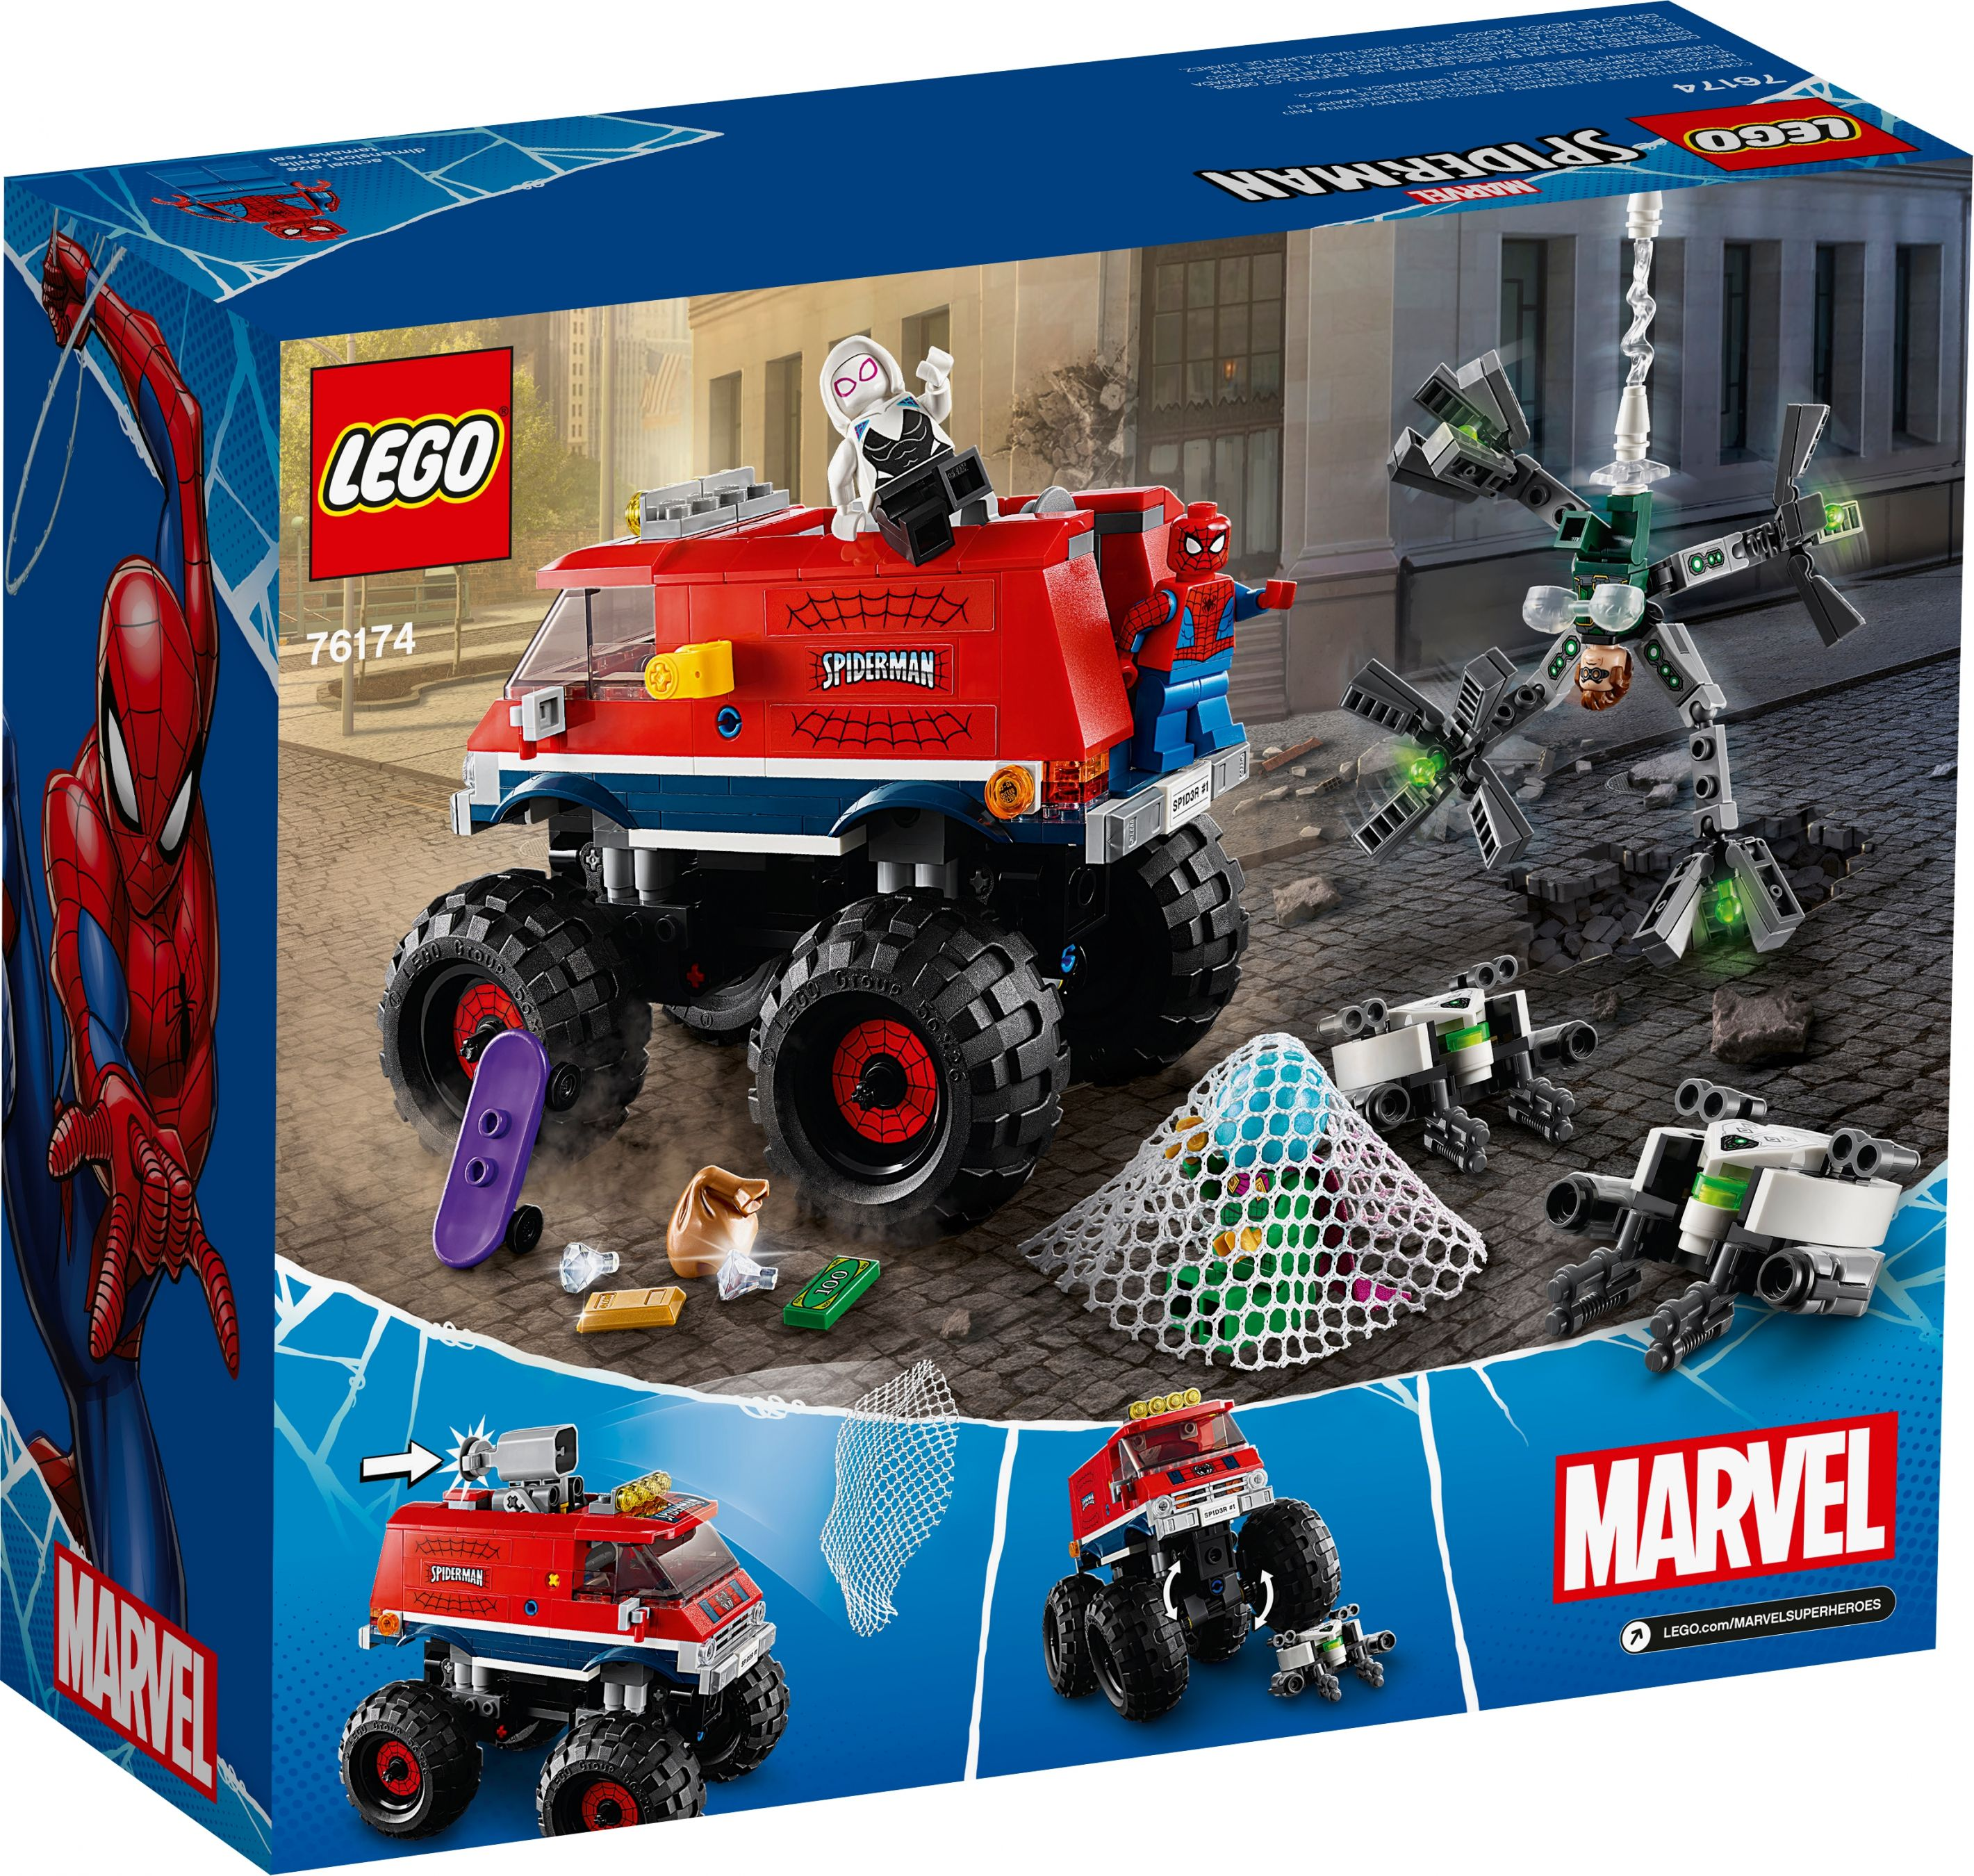 LEGO Super Heroes 76174 Spider-Mans Monstertruck vs. Mysterio LEGO_76174_alt7.jpg